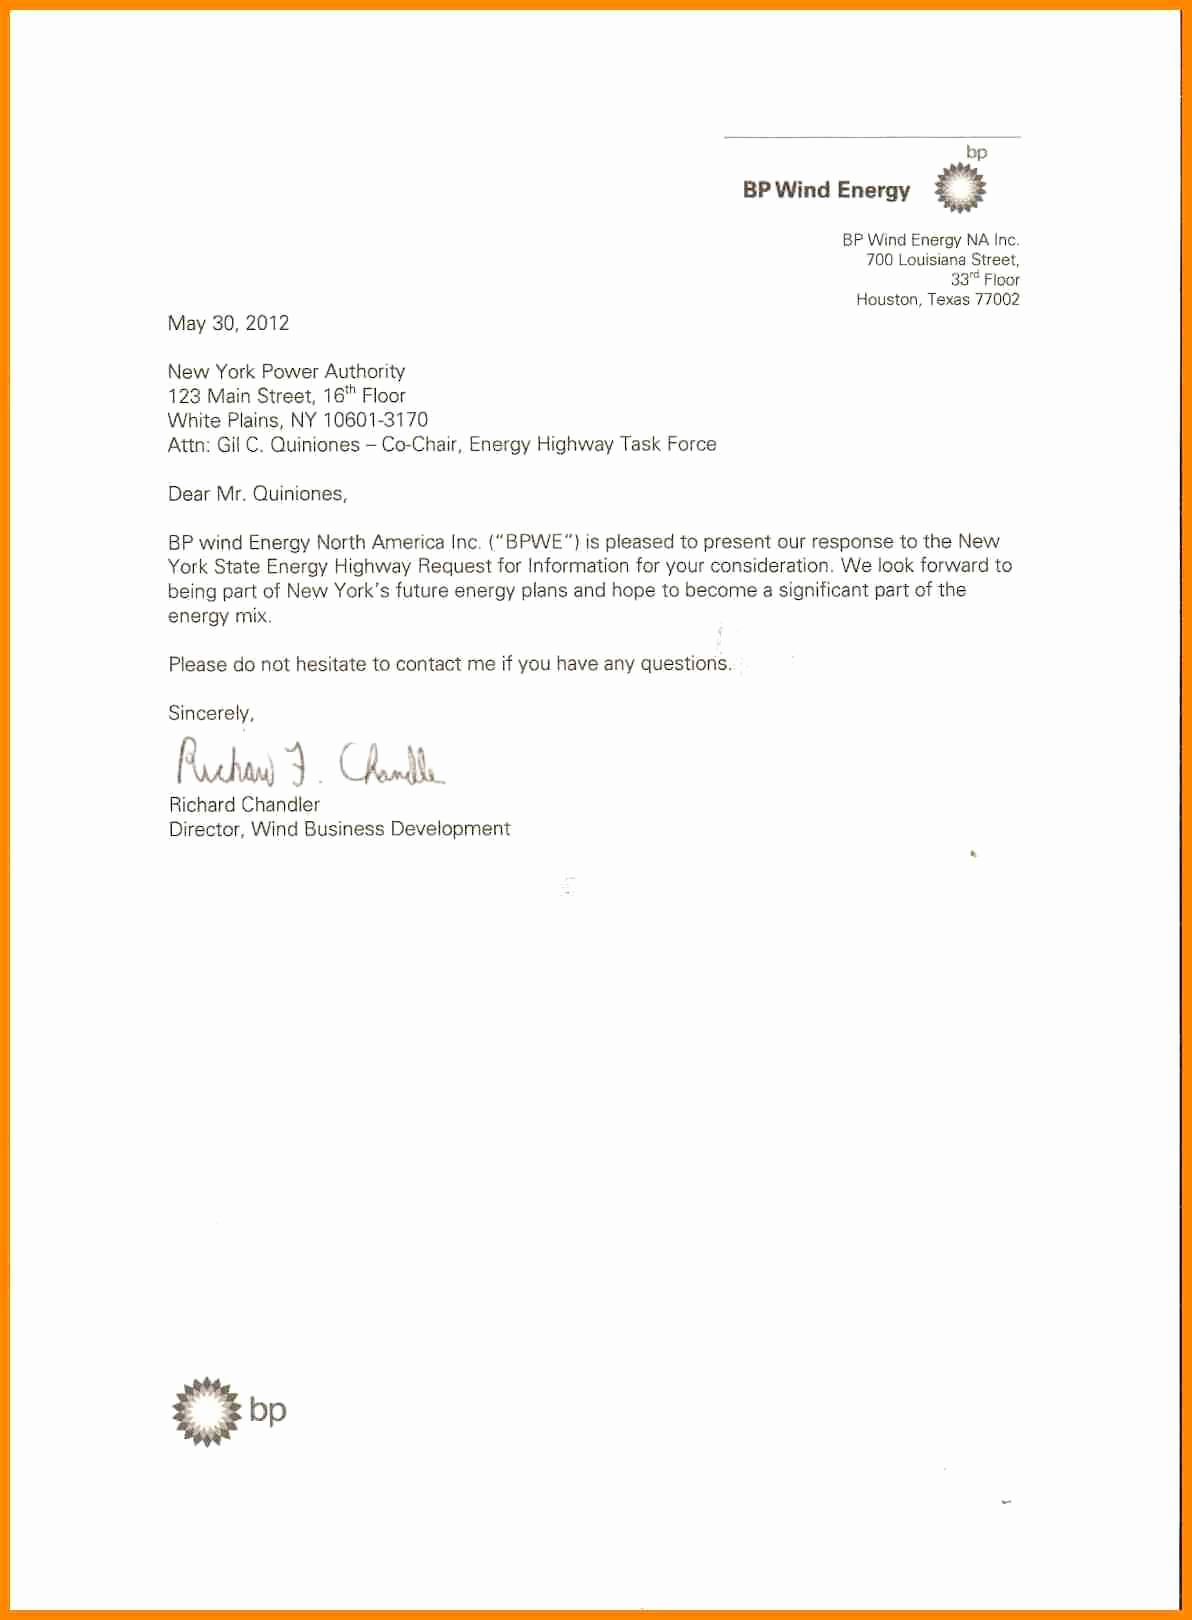 Business Development Cover Letter Template - Resume Cover Letters Samples Unique Good Cover Letter Samples New